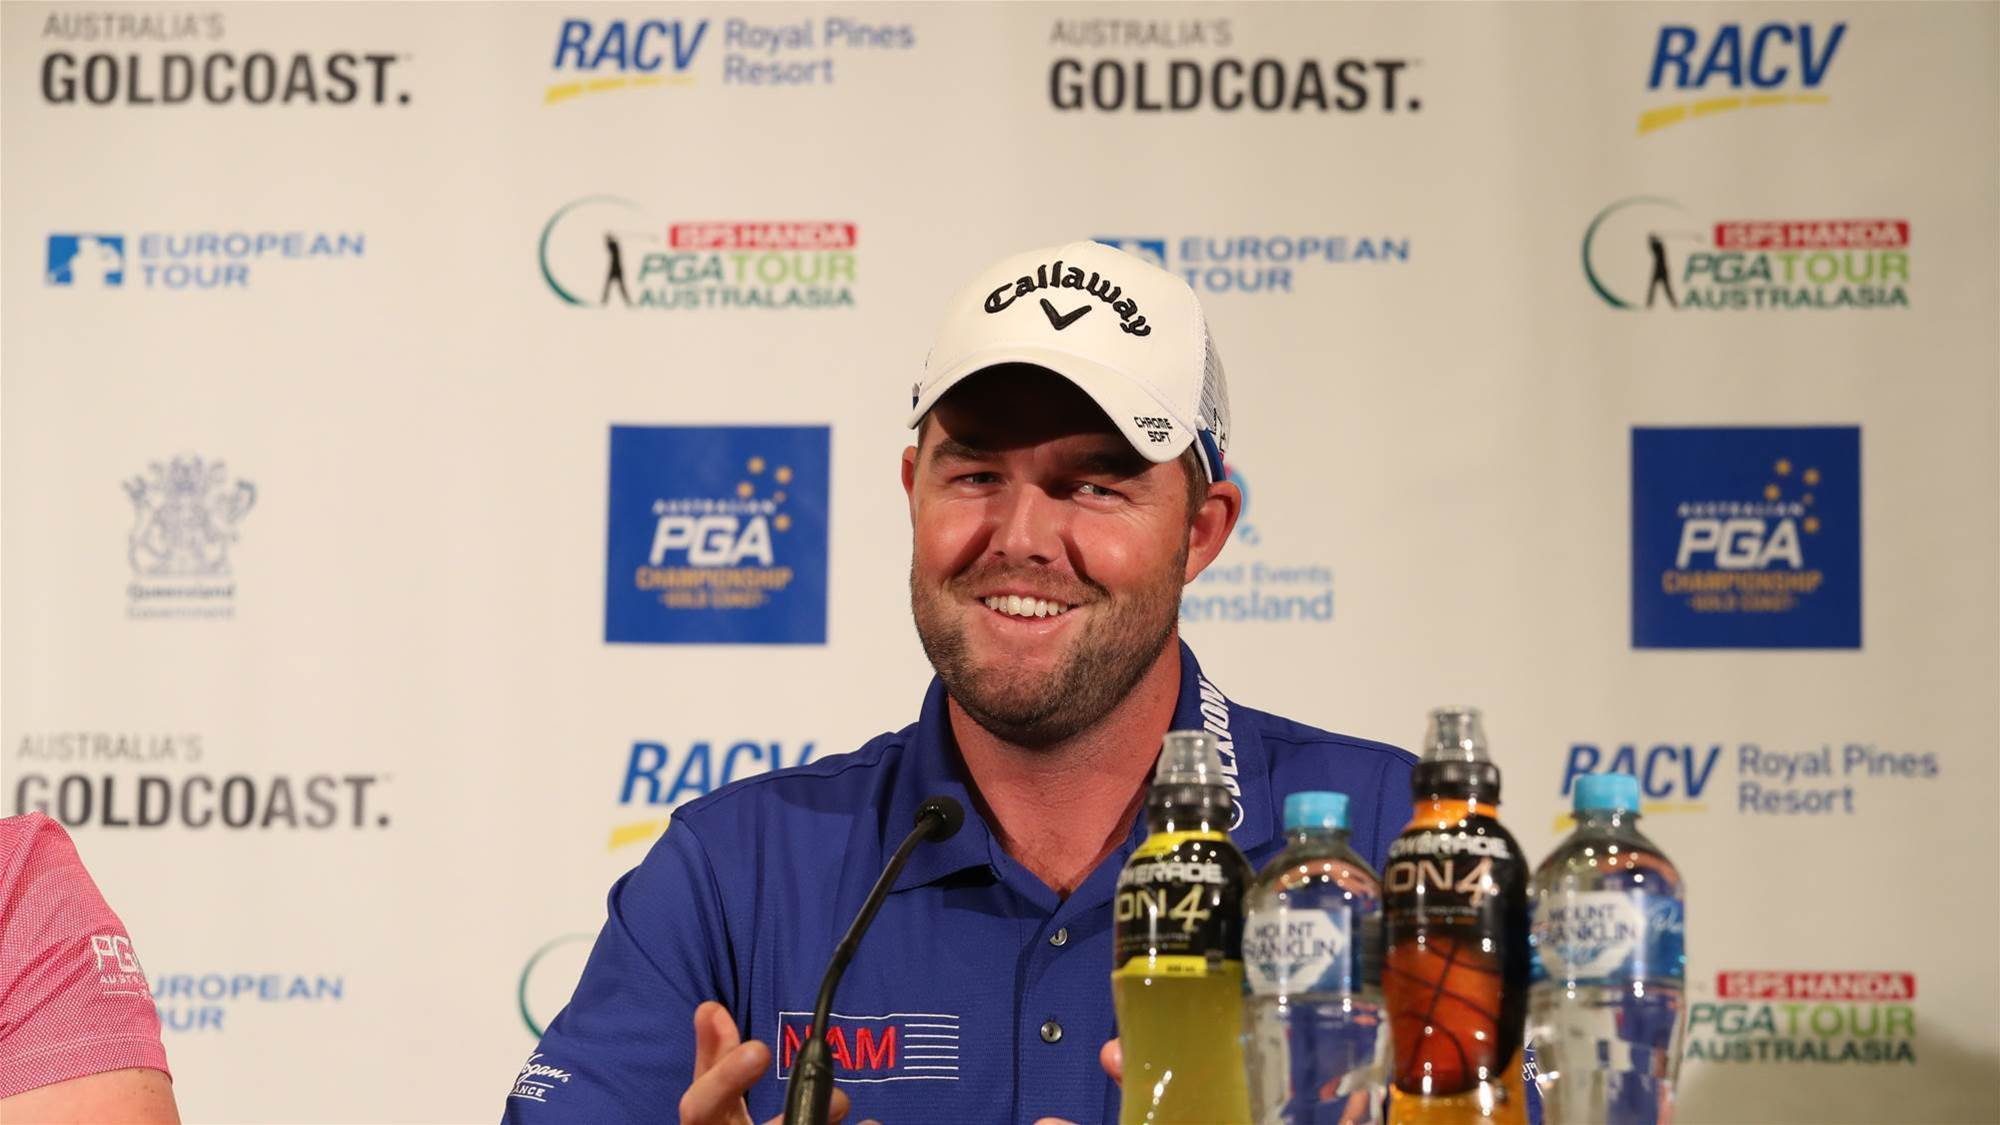 Marc Leishman to play Australian PGA Championship